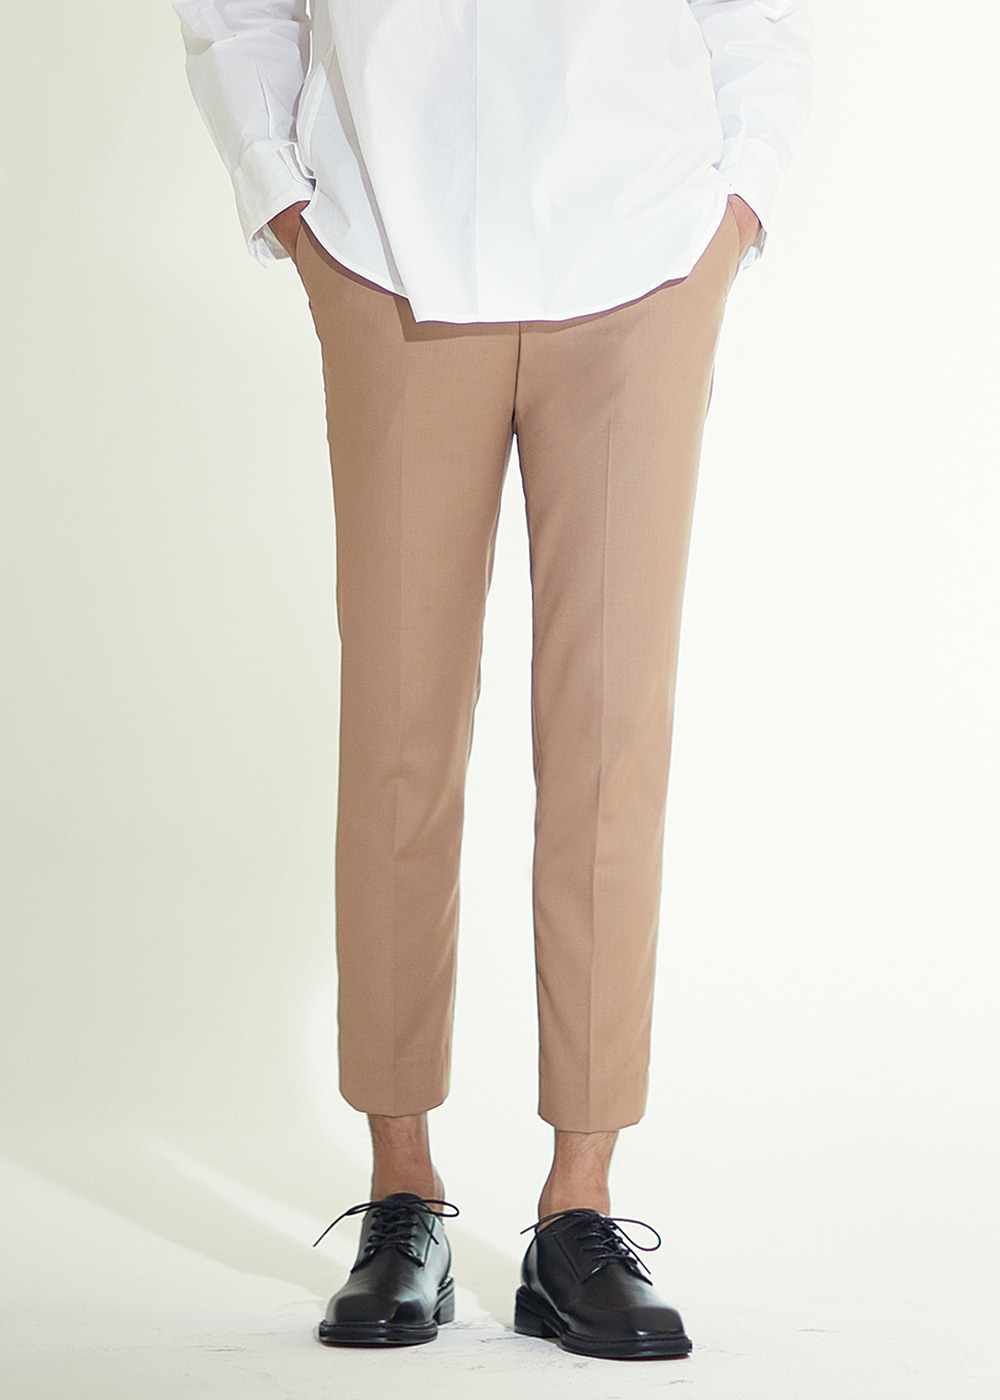 201 TAPERED SLIMFIT CROP SLACKS MOCHA